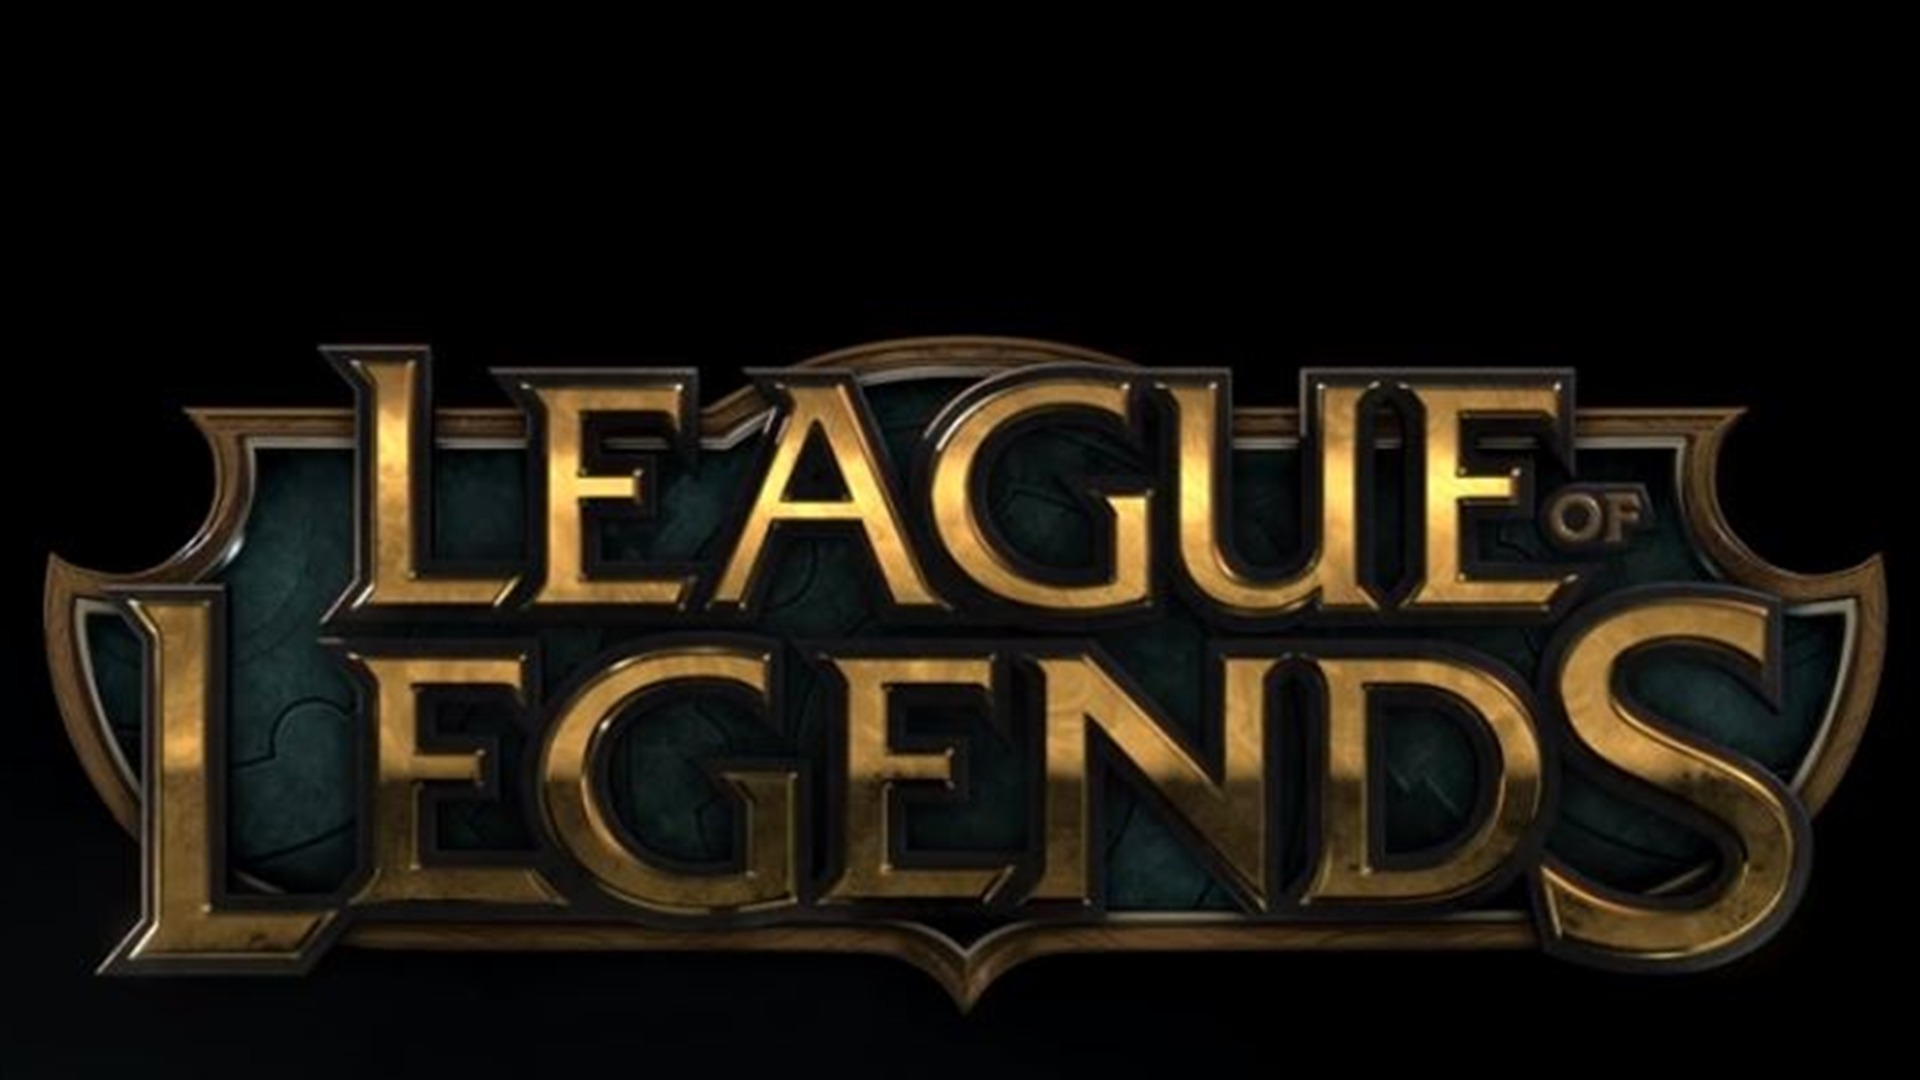 'League of Legends' update lore in 'Where Icathia Once Stood'